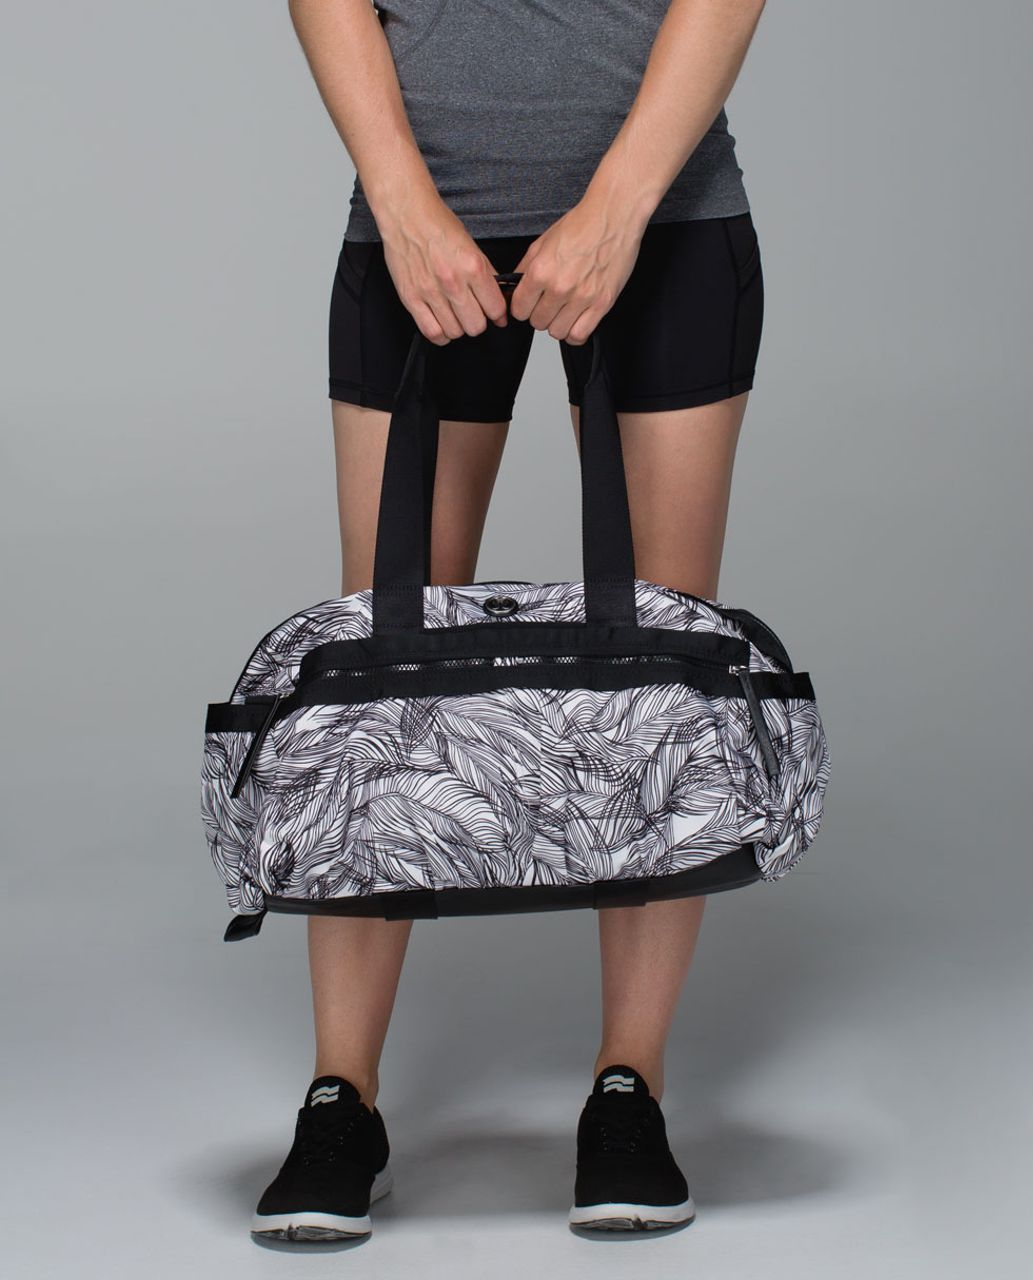 6509b7388ba Lululemon Gym To Win Duffel - Sketchy Palms White Black / Black - lulu  fanatics